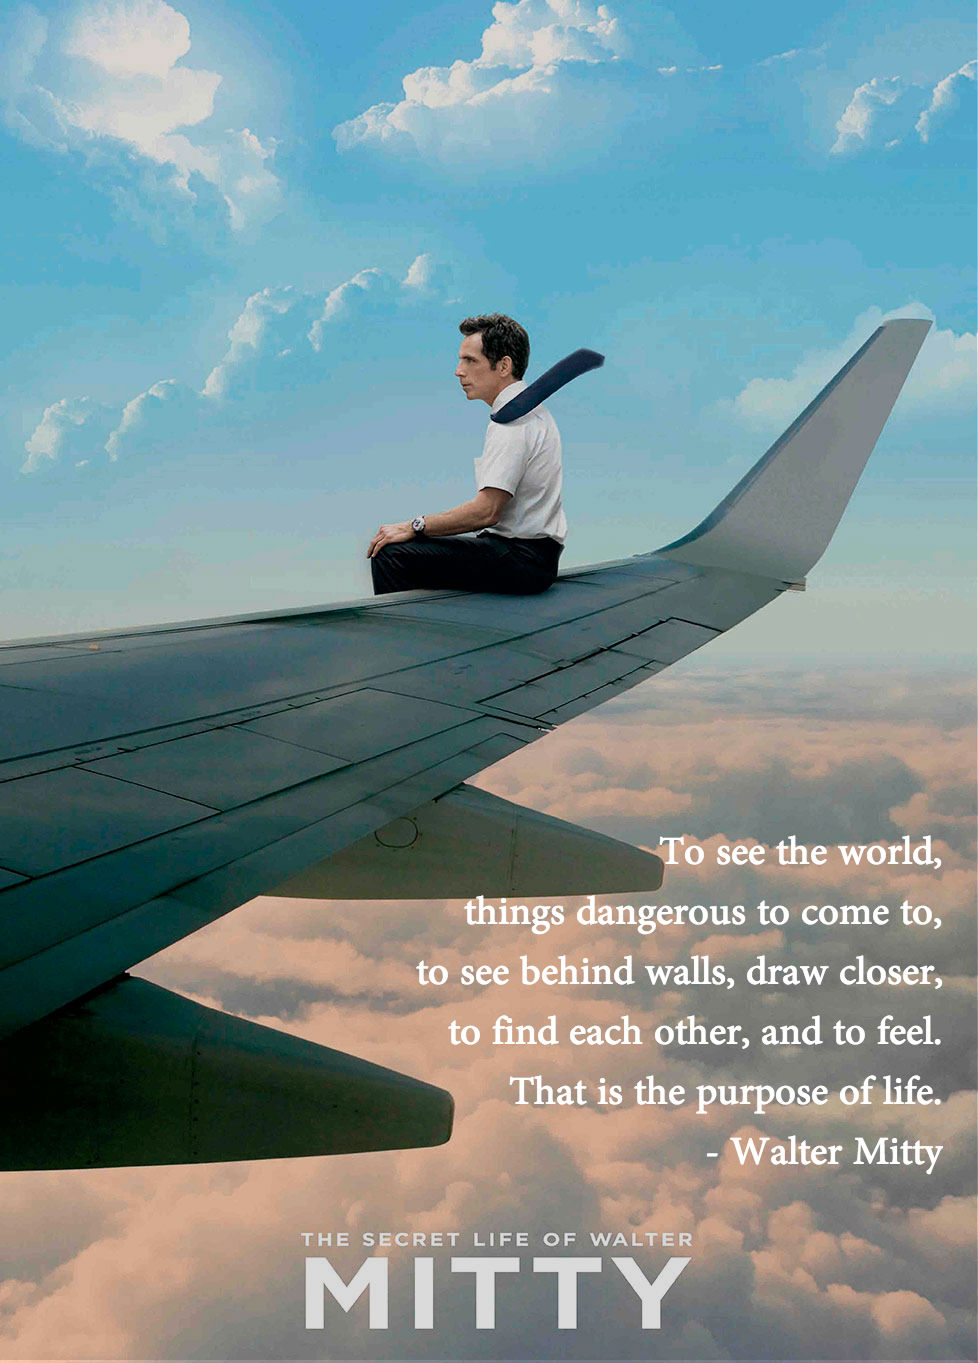 quotes from The Secret Life of Walter Mitty – SOA Inspired